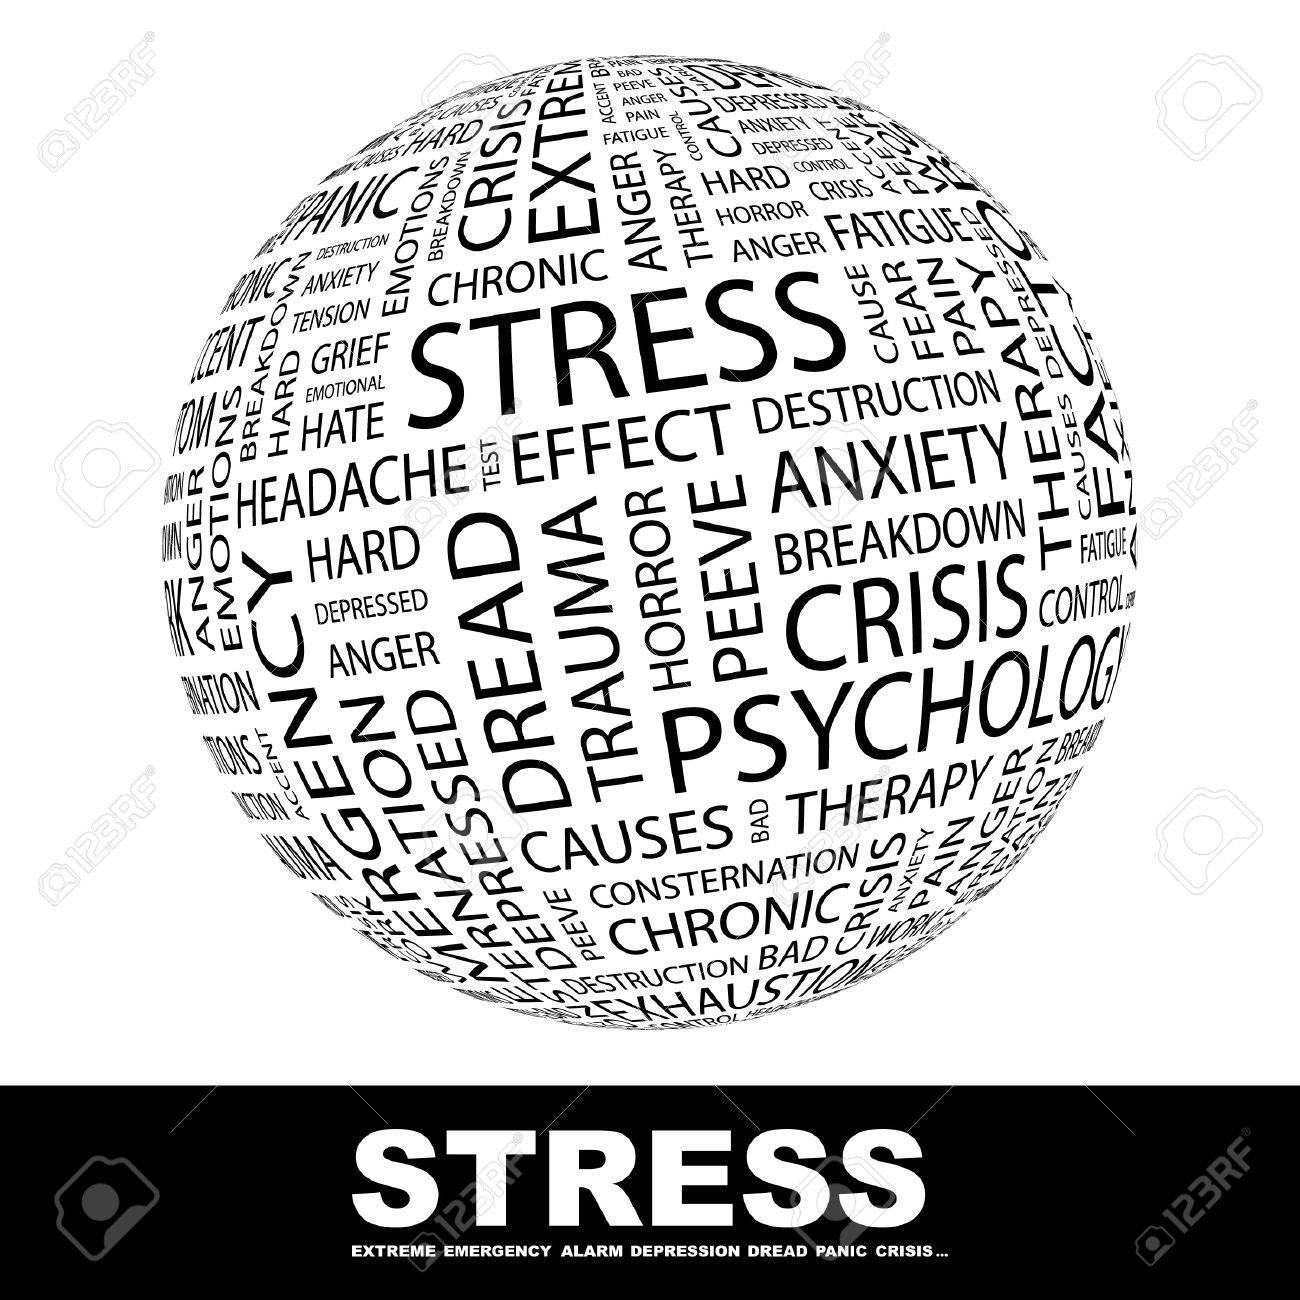 STRESS. Globe with different association terms. Wordcloud vector illustration. Stock Vector - 9129840